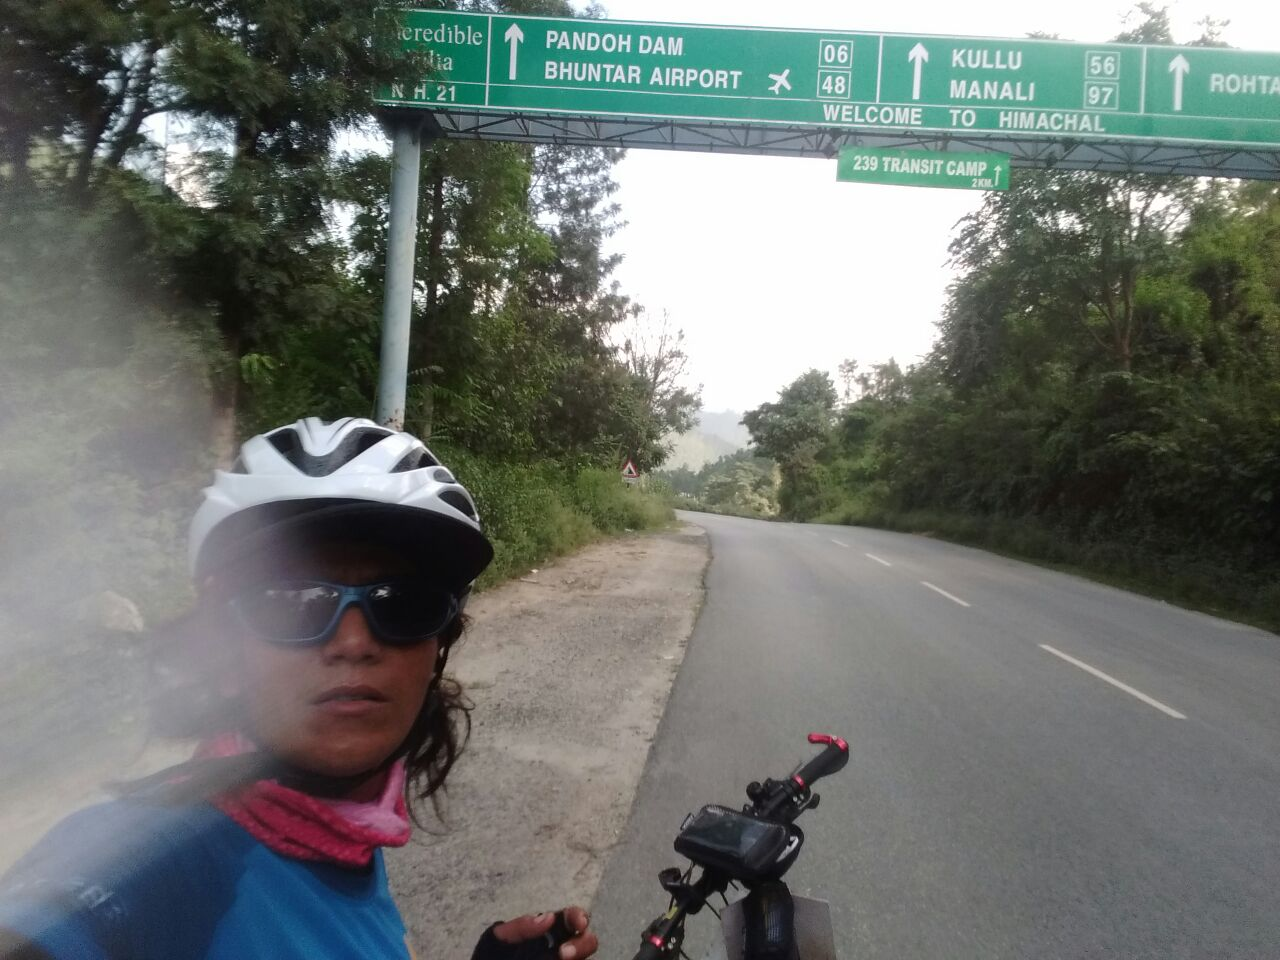 Solo Cycling Expedition - On the way